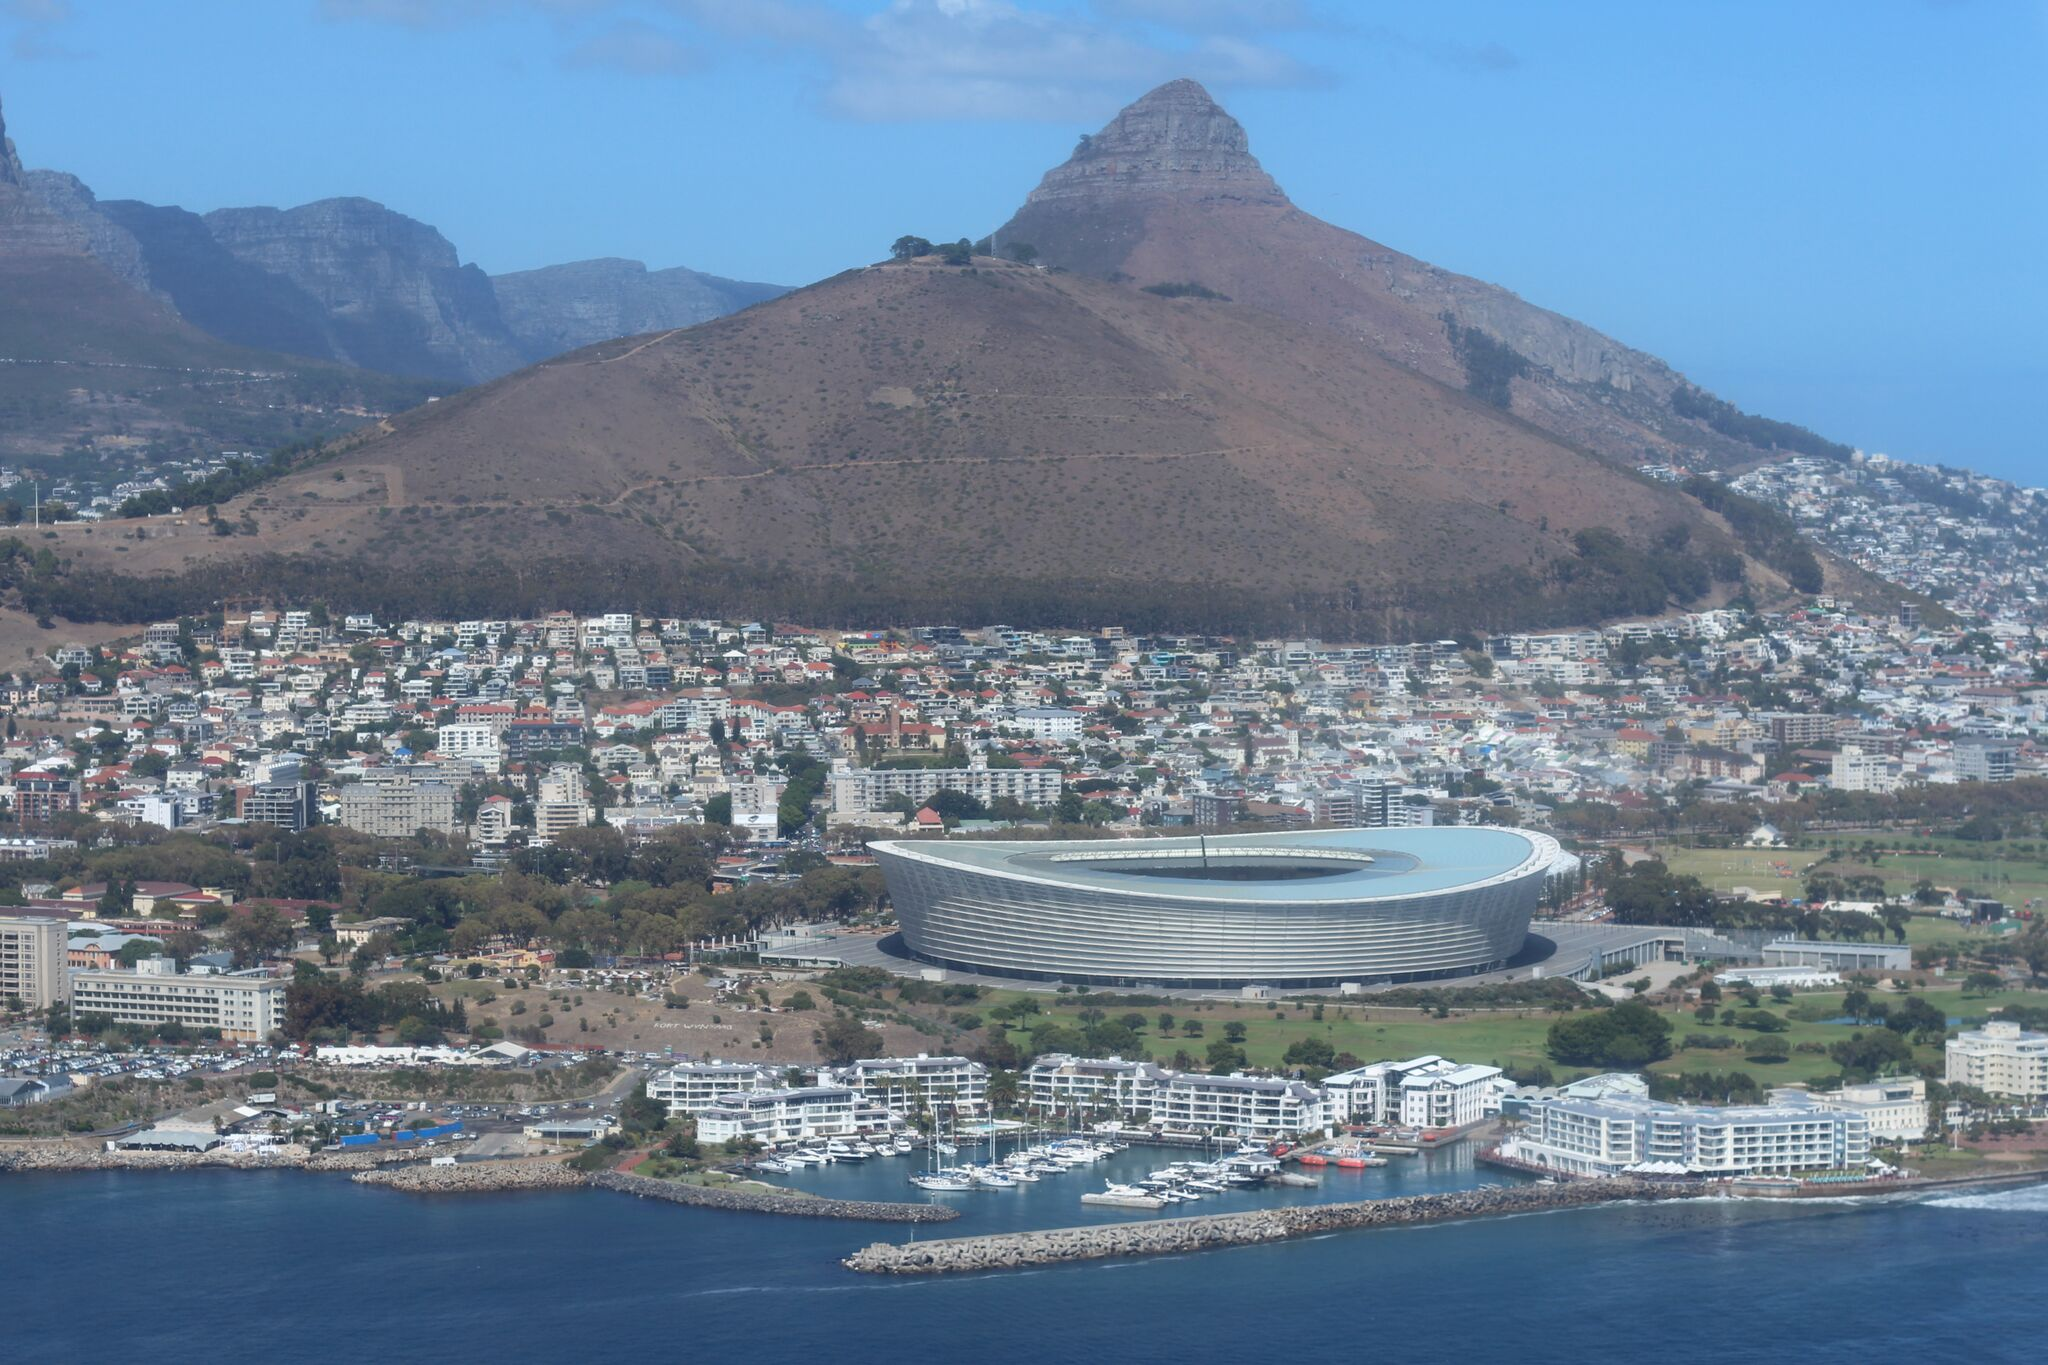 Cape Town Helicopter Flight  Sport Helicopters Gallery By Odette Butcher